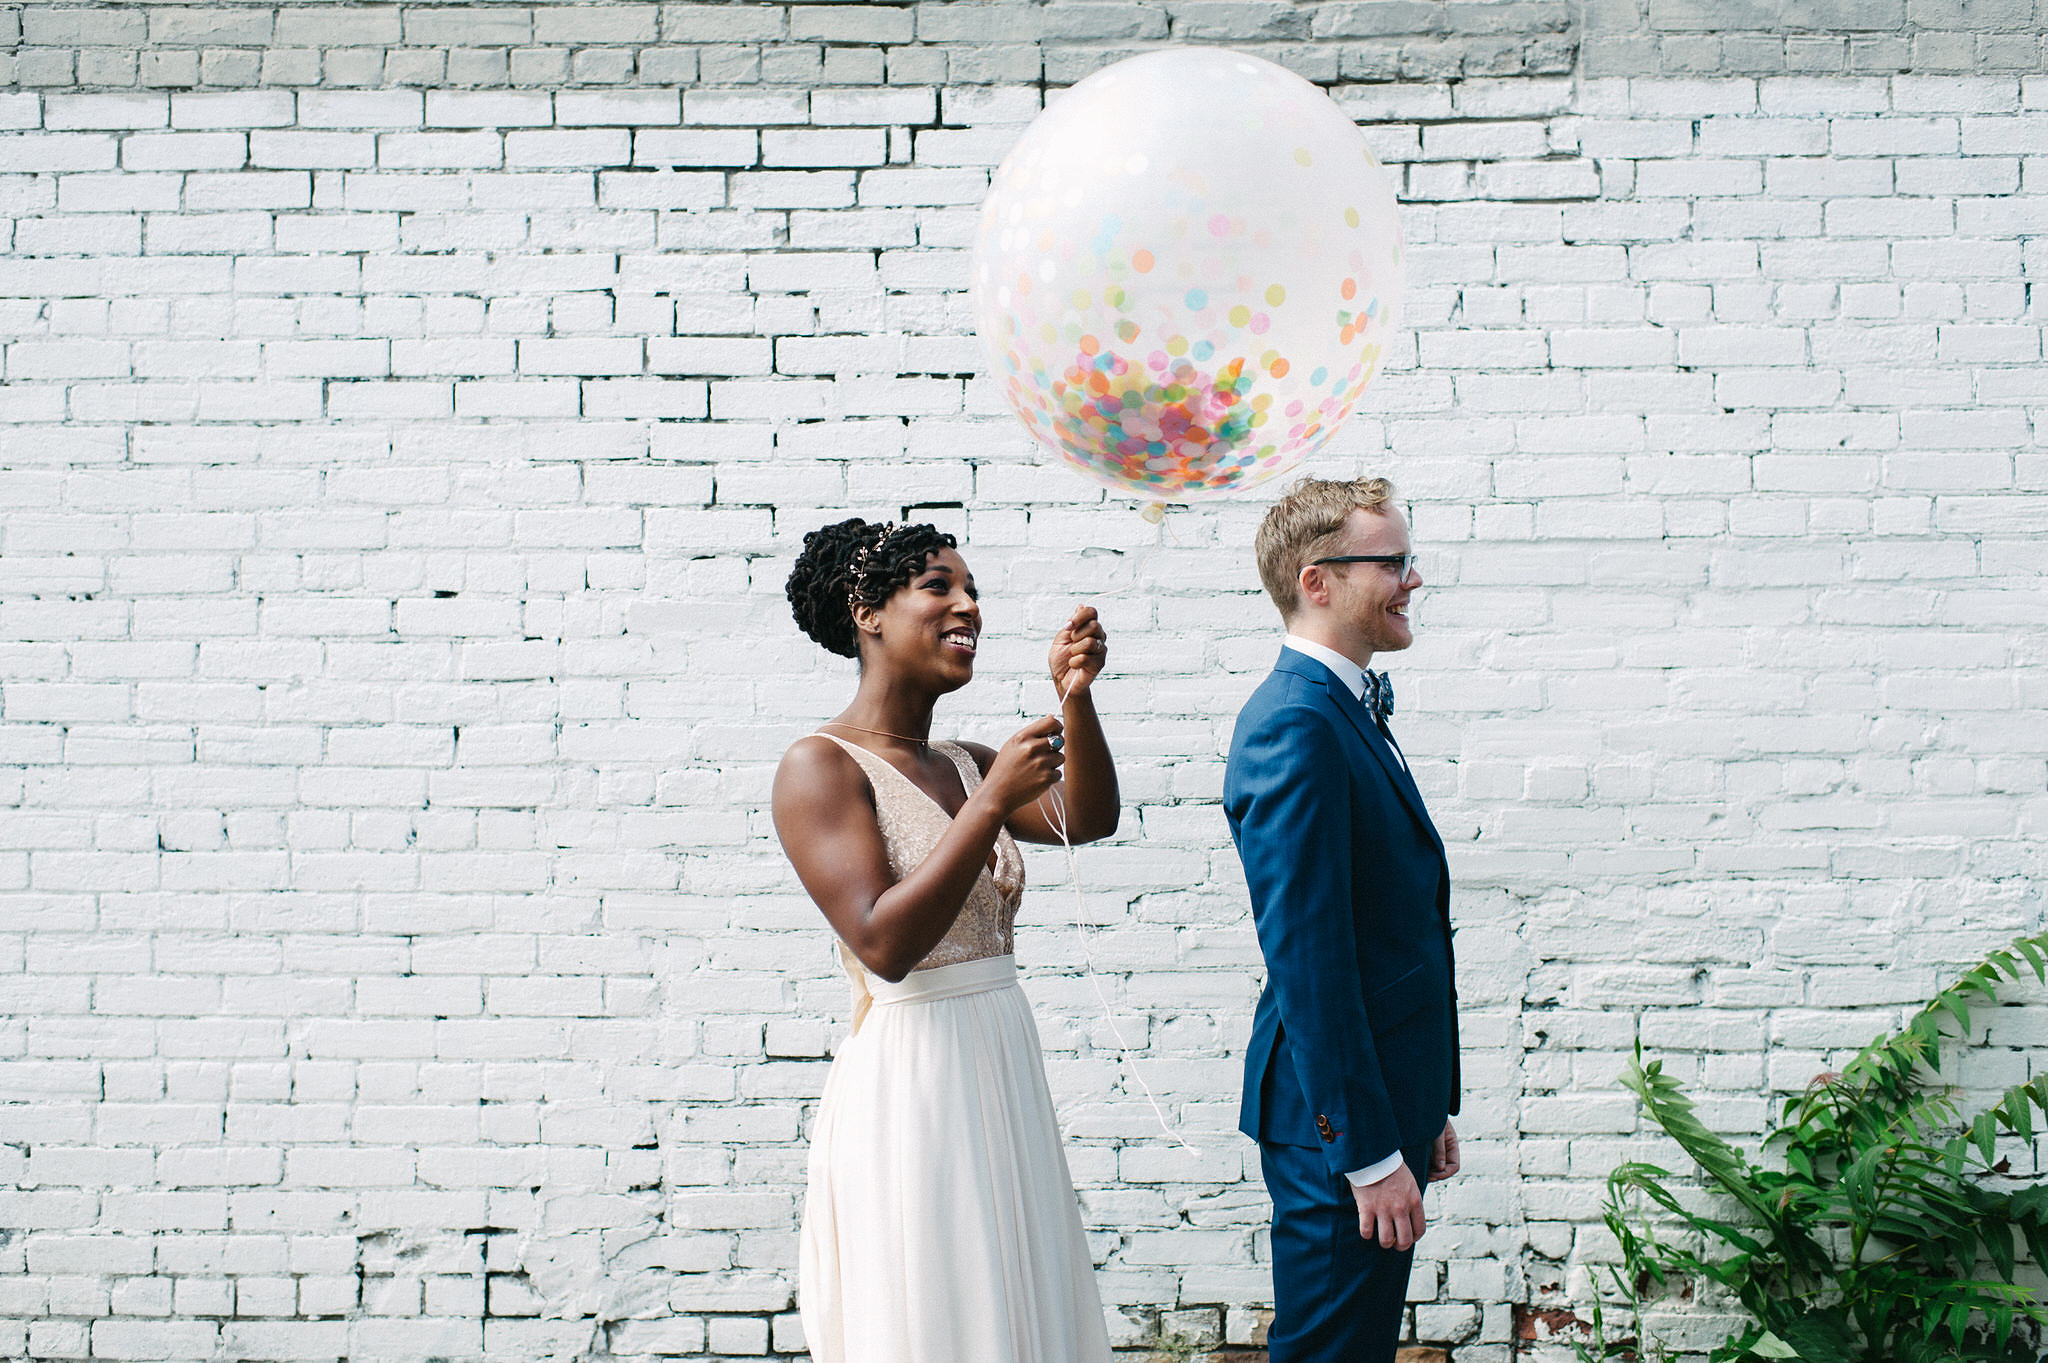 steph tim wedding couple first look confetti balloon